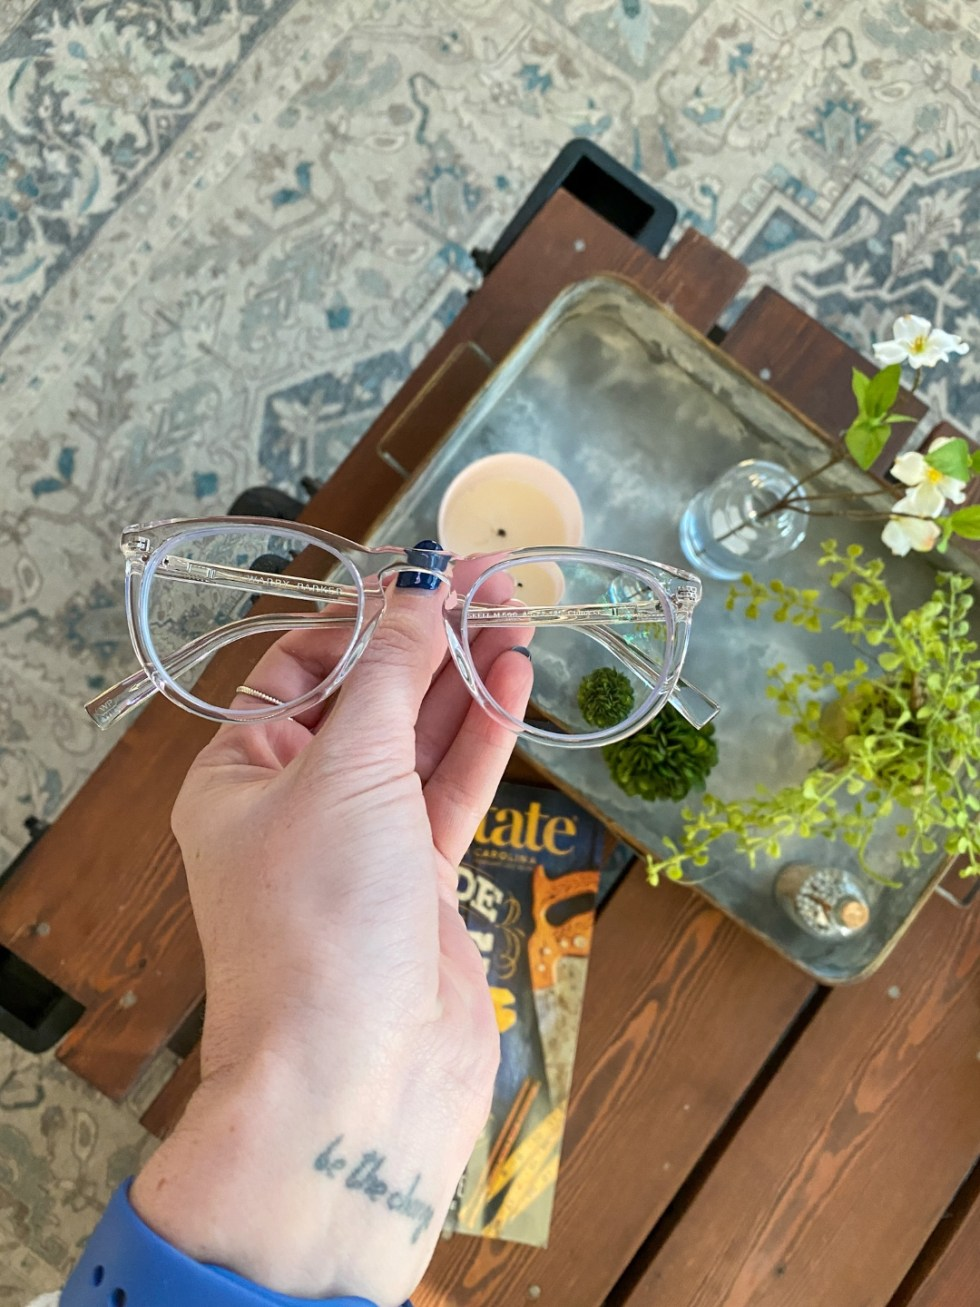 See With Style: Warby Parker Eye Glasses - I'm Fixin' To - @imfixintoblog |Warby Parker Eye Glasses by popular NC fashion blog, I'm Fixin' To: image of a woman holding a pair of Warby Parker glasses.